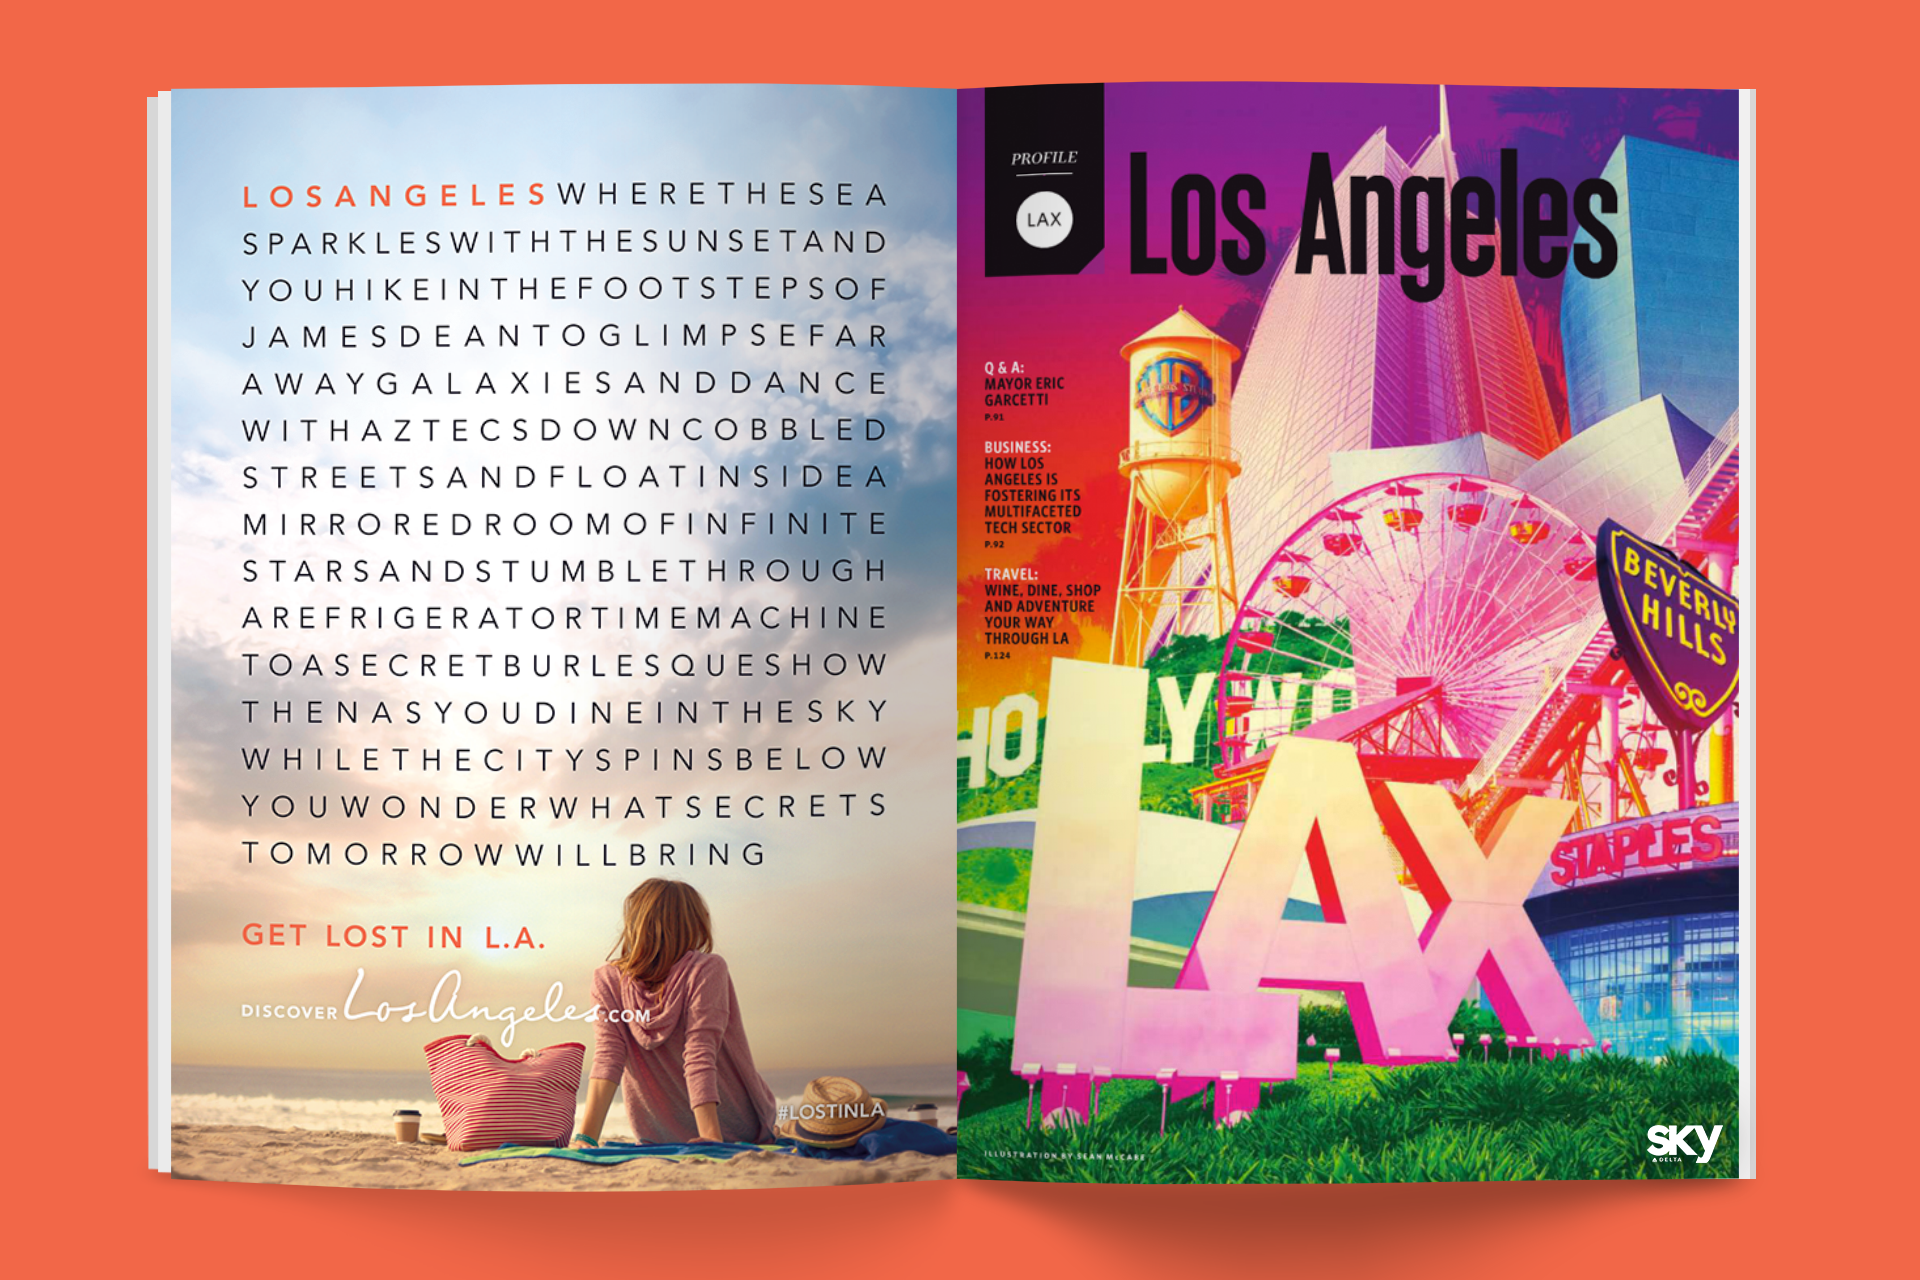 Get Lost in L.A. ad campaign print ad for L.A. Tourism & Convention Board by Tom Morhous and Remo+Oob, Ltd.